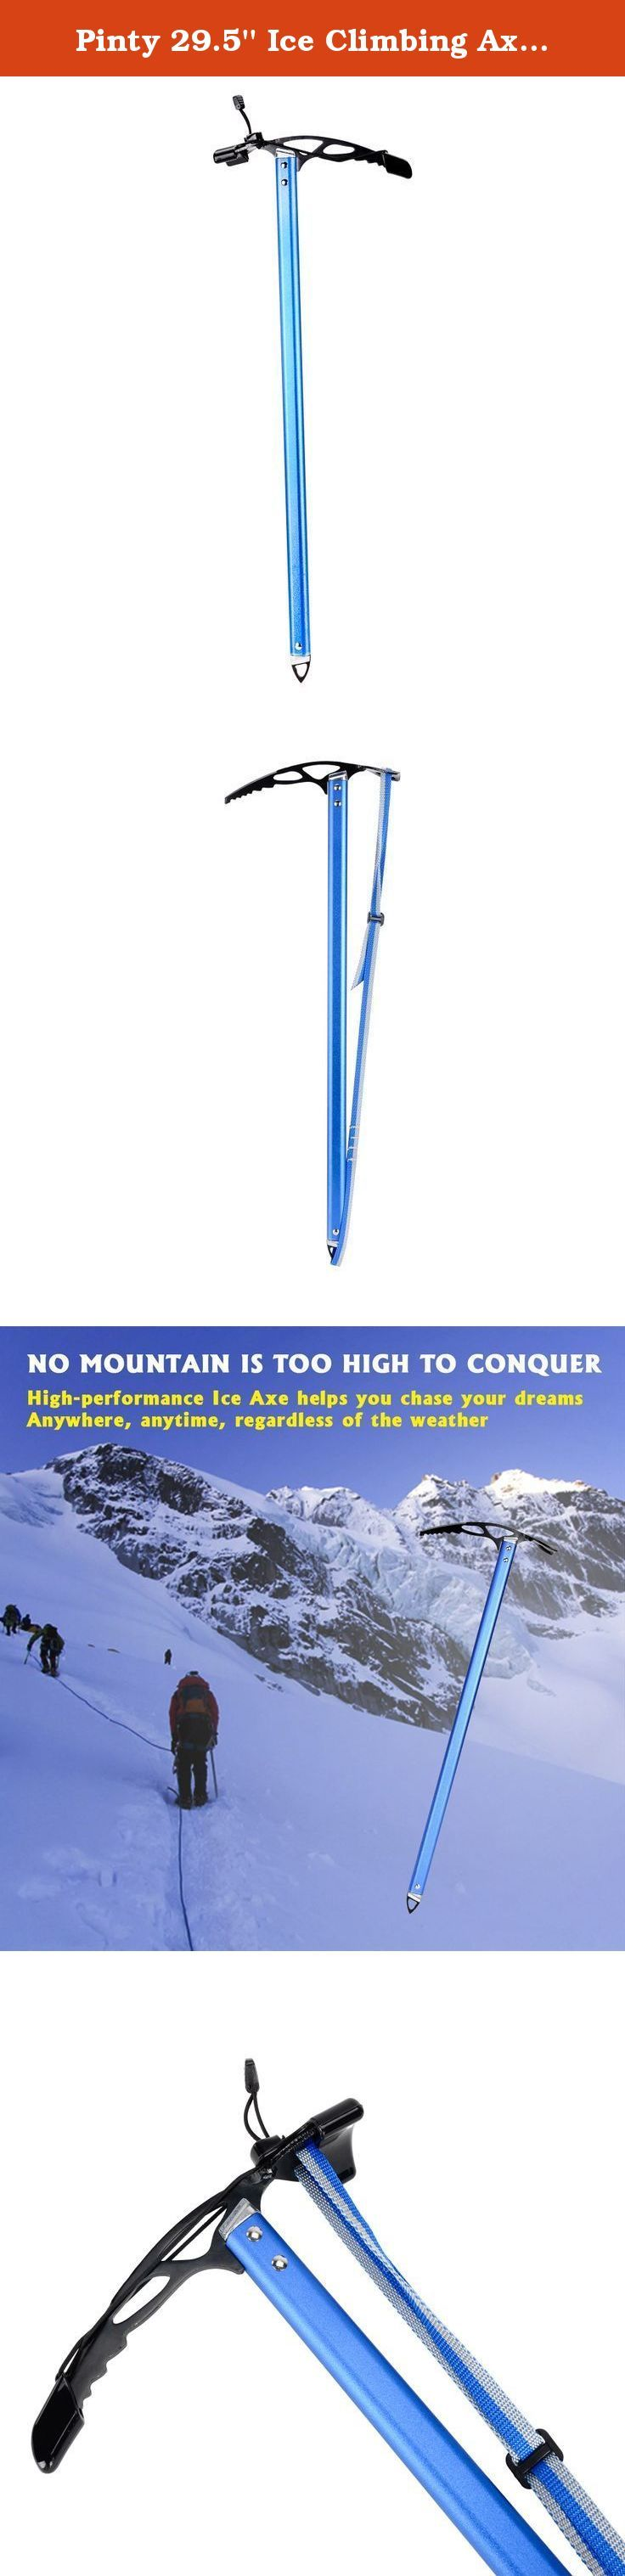 Pinty 29.5'' Ice Climbing Axe Mountaineering Axe Made of Aluminum Magnesium Alloy (blue). A professional mountaineering axe without a premium price tag, this is our brand new heavy duty mountaineering climbing axe. It is tough, it is rough, and it will help you to conquer any mountains without problems. Made of premium aluminum magnesium alloy, our product is not only sturdy but also very lightweight. Attach it on your backpack and you will forget you have it, but when the time comes, it...